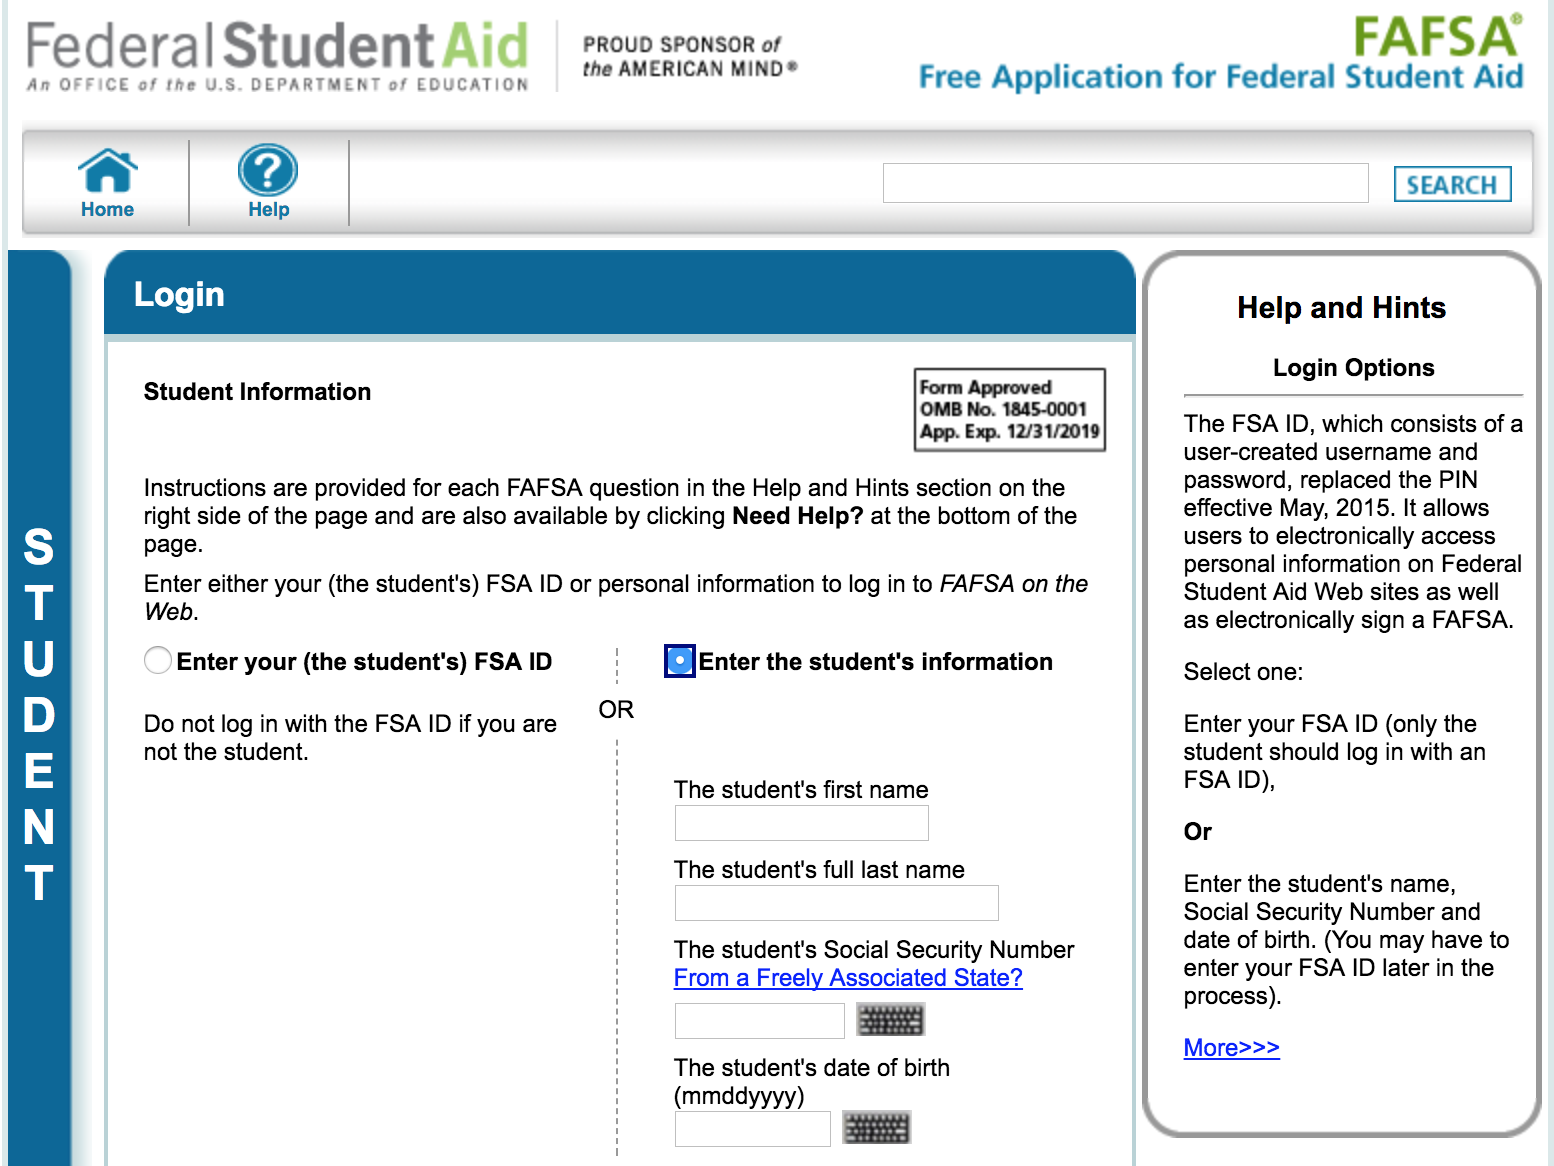 Name+DOB+SSN=FAFSA Data Gold Mine | HackFence Manages